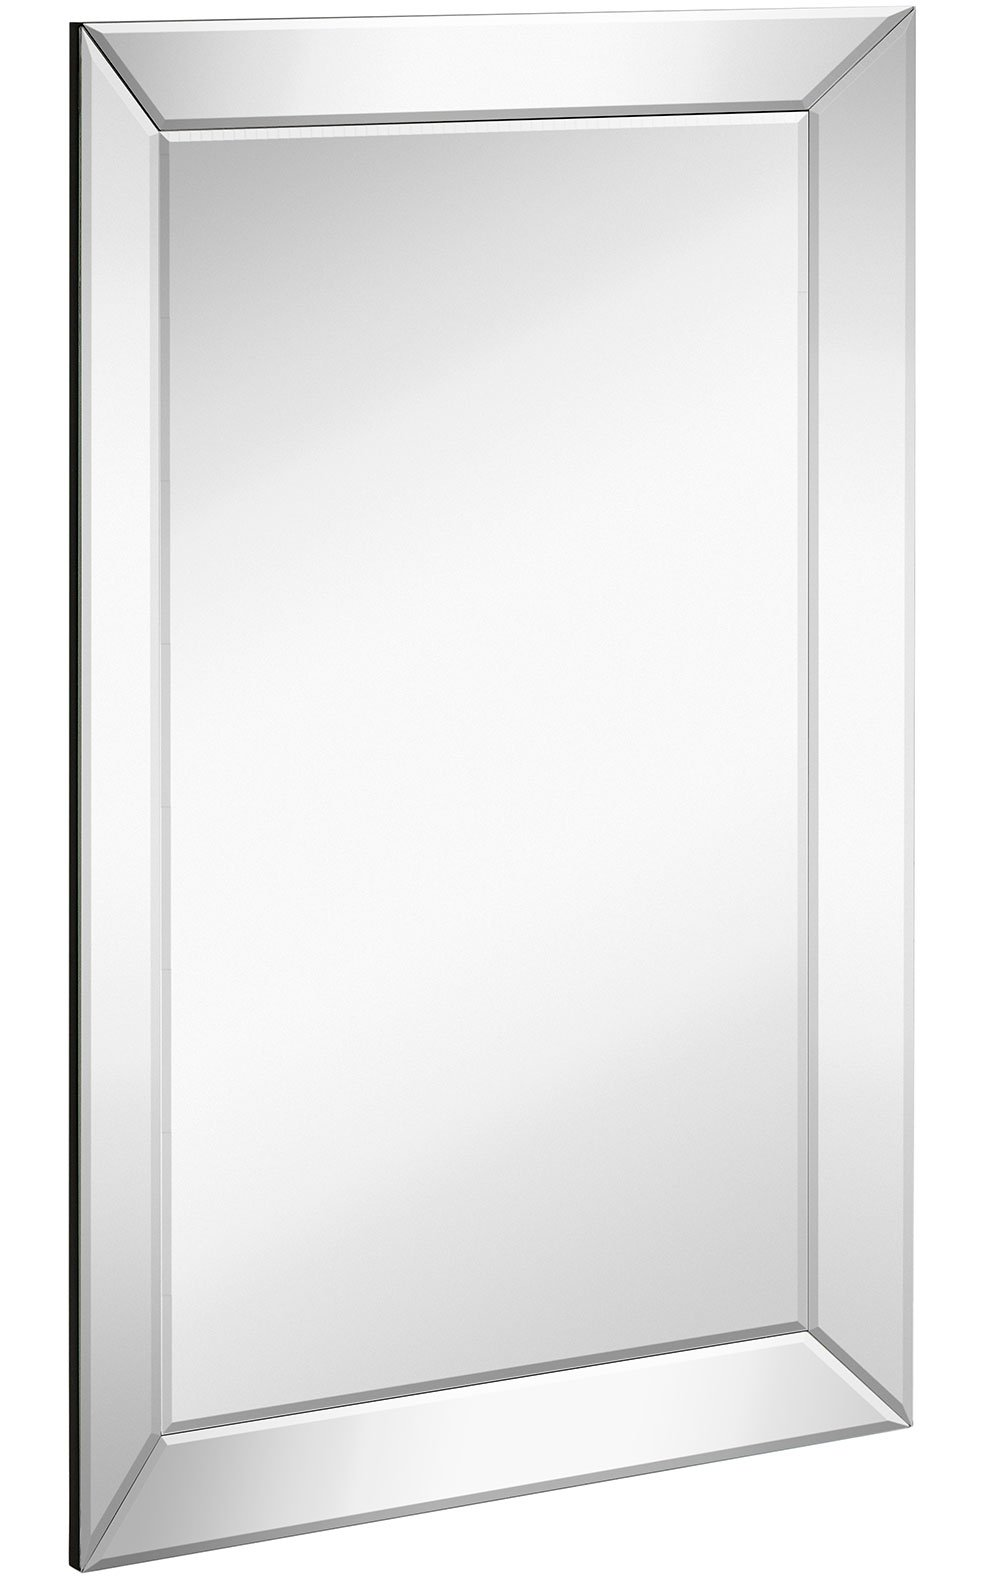 Large Framed Wall Mirror with Angled Beveled Mirror Frame | Premium Silver Backed Glass Panel Vanity, Bedroom, or Bathroom | Luxury Mirrored Rectangle Hangs Horizontal or Vertical (20'' x 30'')